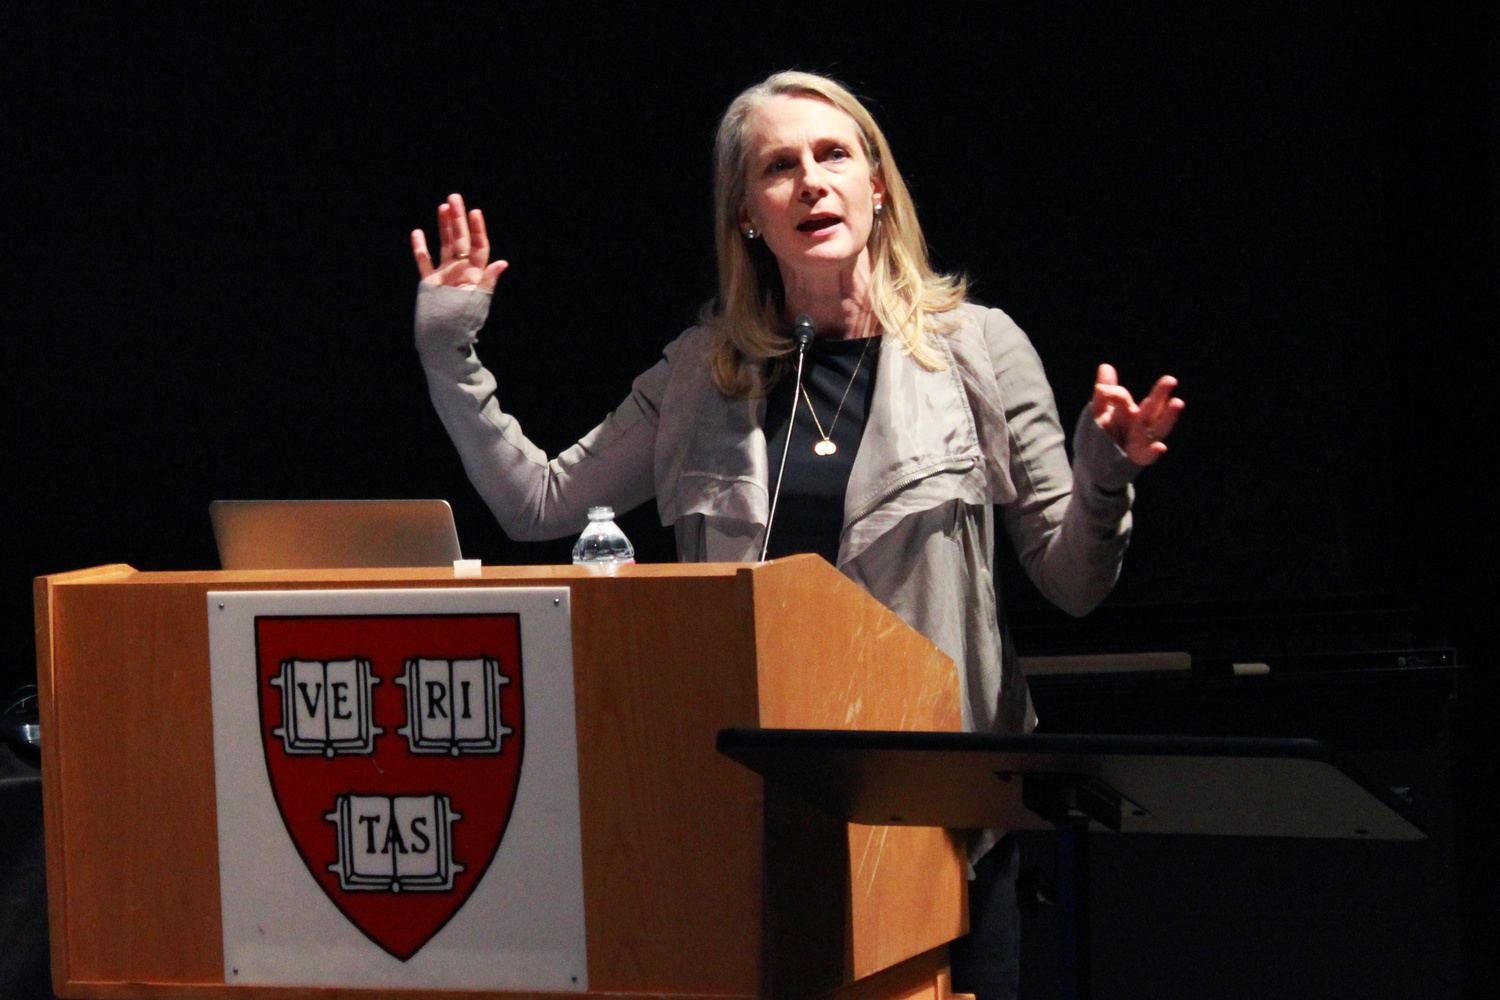 Piper Kerman, author of the popular book Orange is the New Black, speaks at the Science Center after receiving the Humanist Heroine of the Year Award. She talked about the difficulties marginalized men and women face in prisons and after they are released.